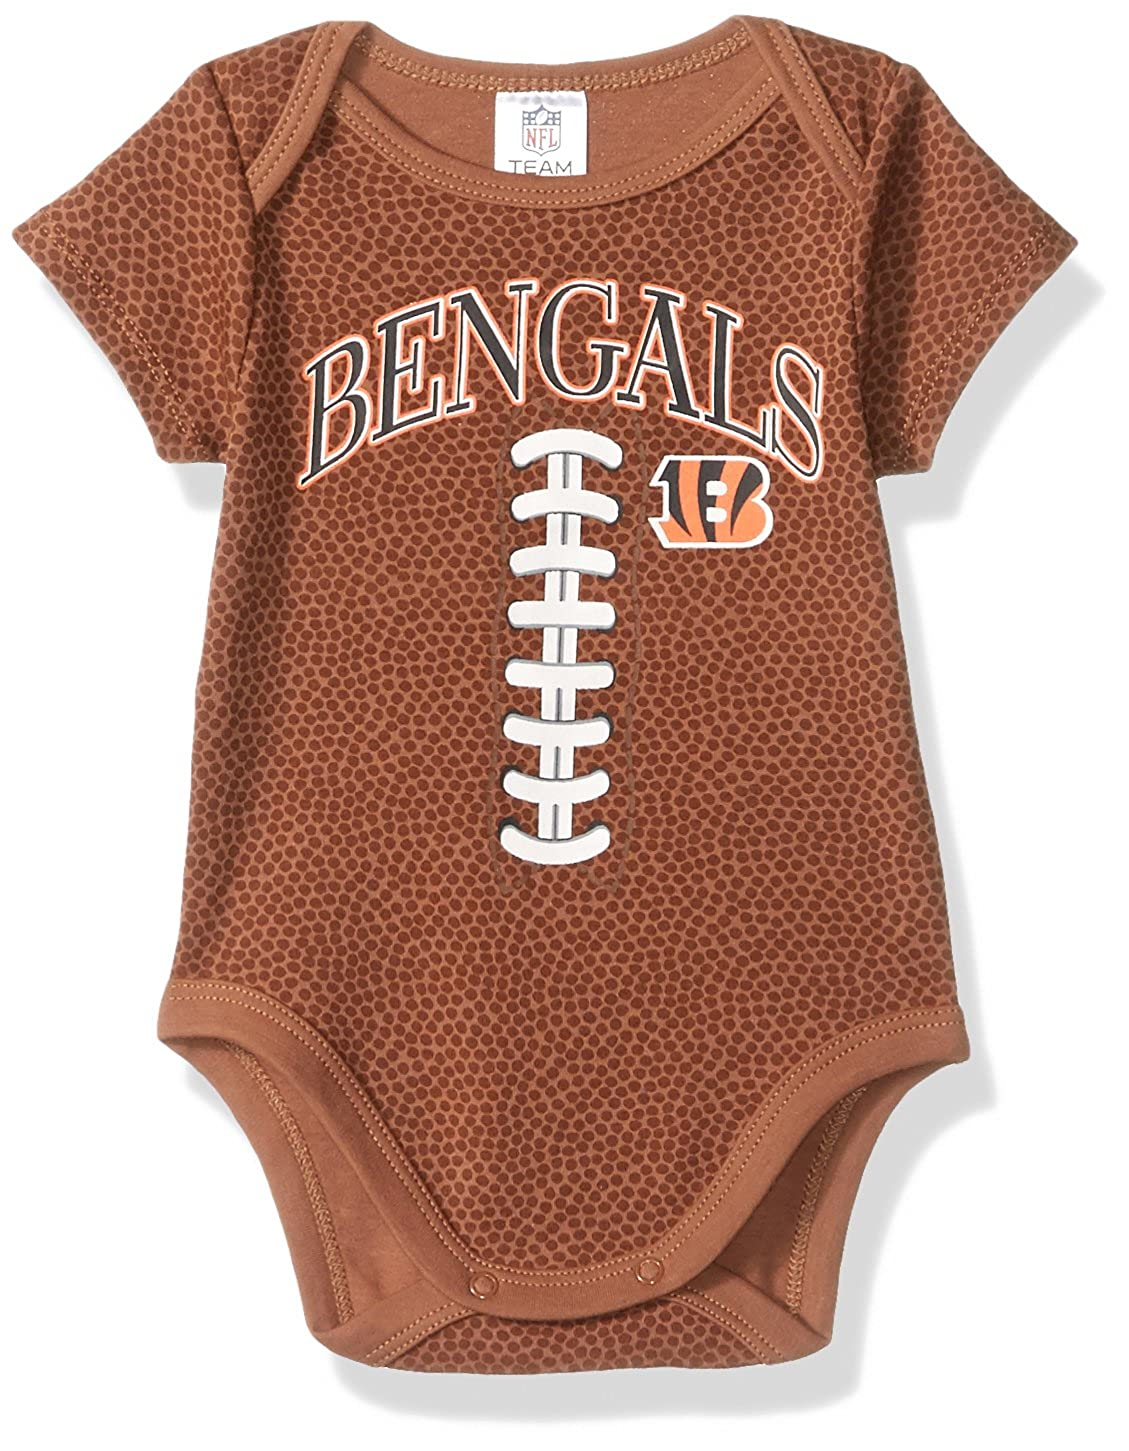 NFL Football Bodysuit